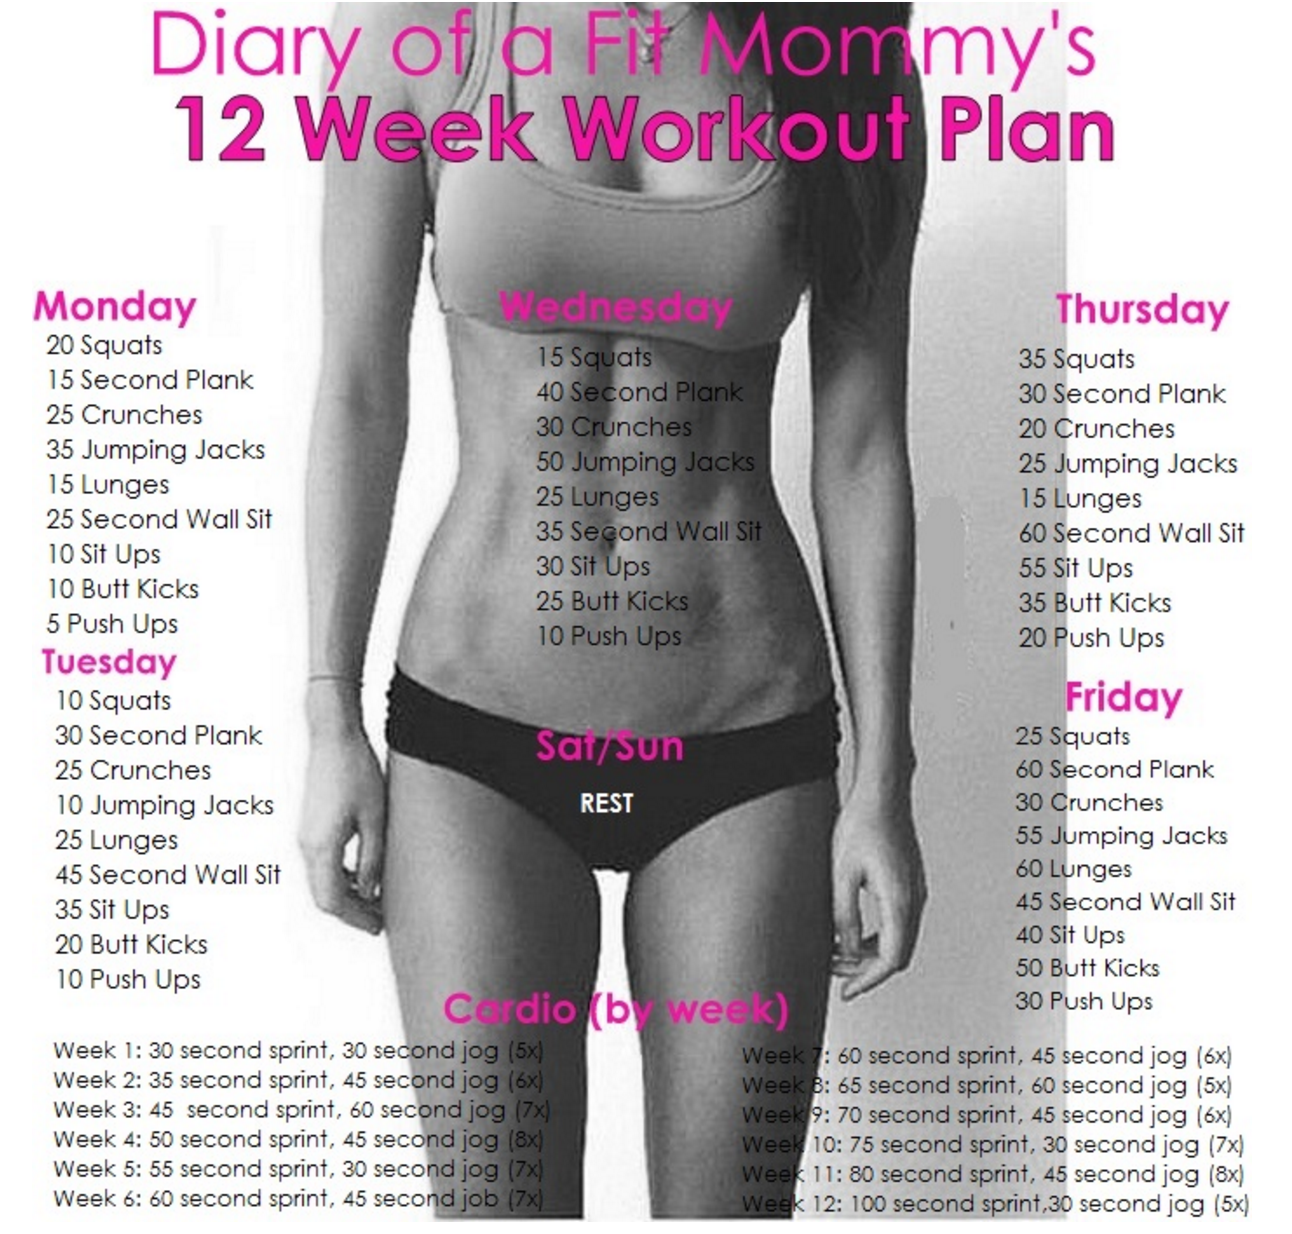 Daily diet plan for slim body image 4